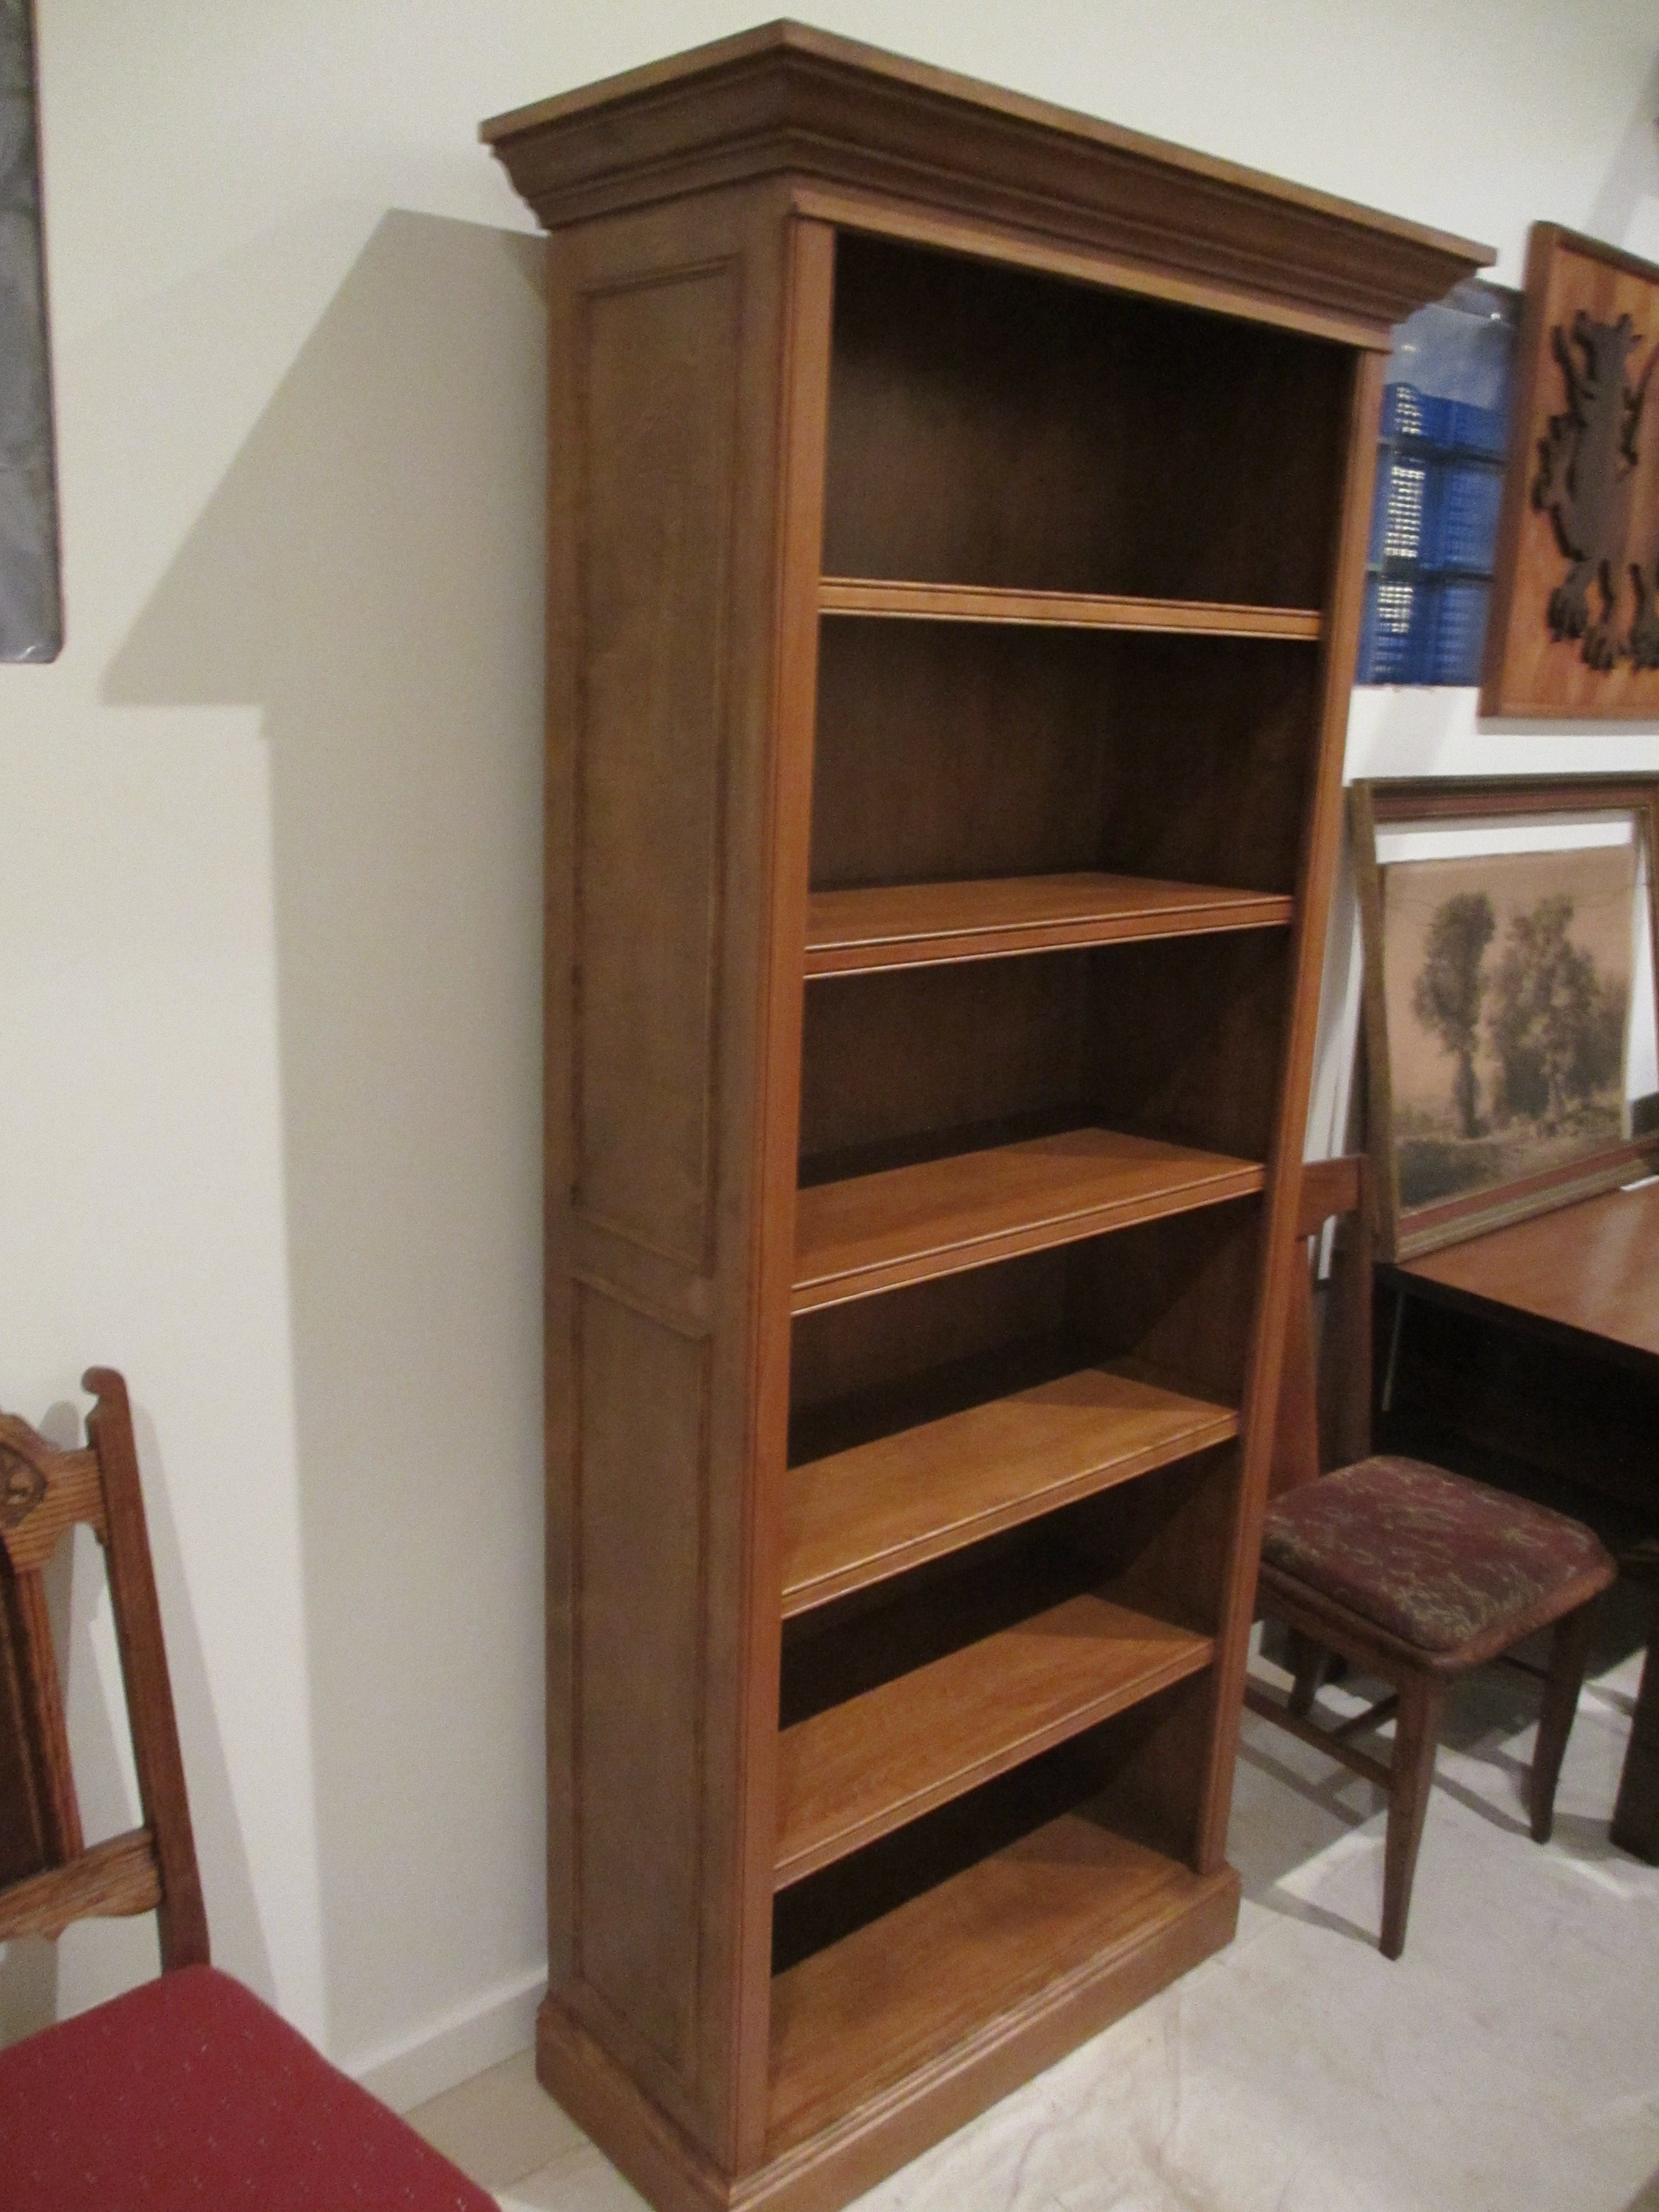 Buy A Custom Traditional Birch Bookcase Made To Order From Artisan Furniture Mke Custommade Com